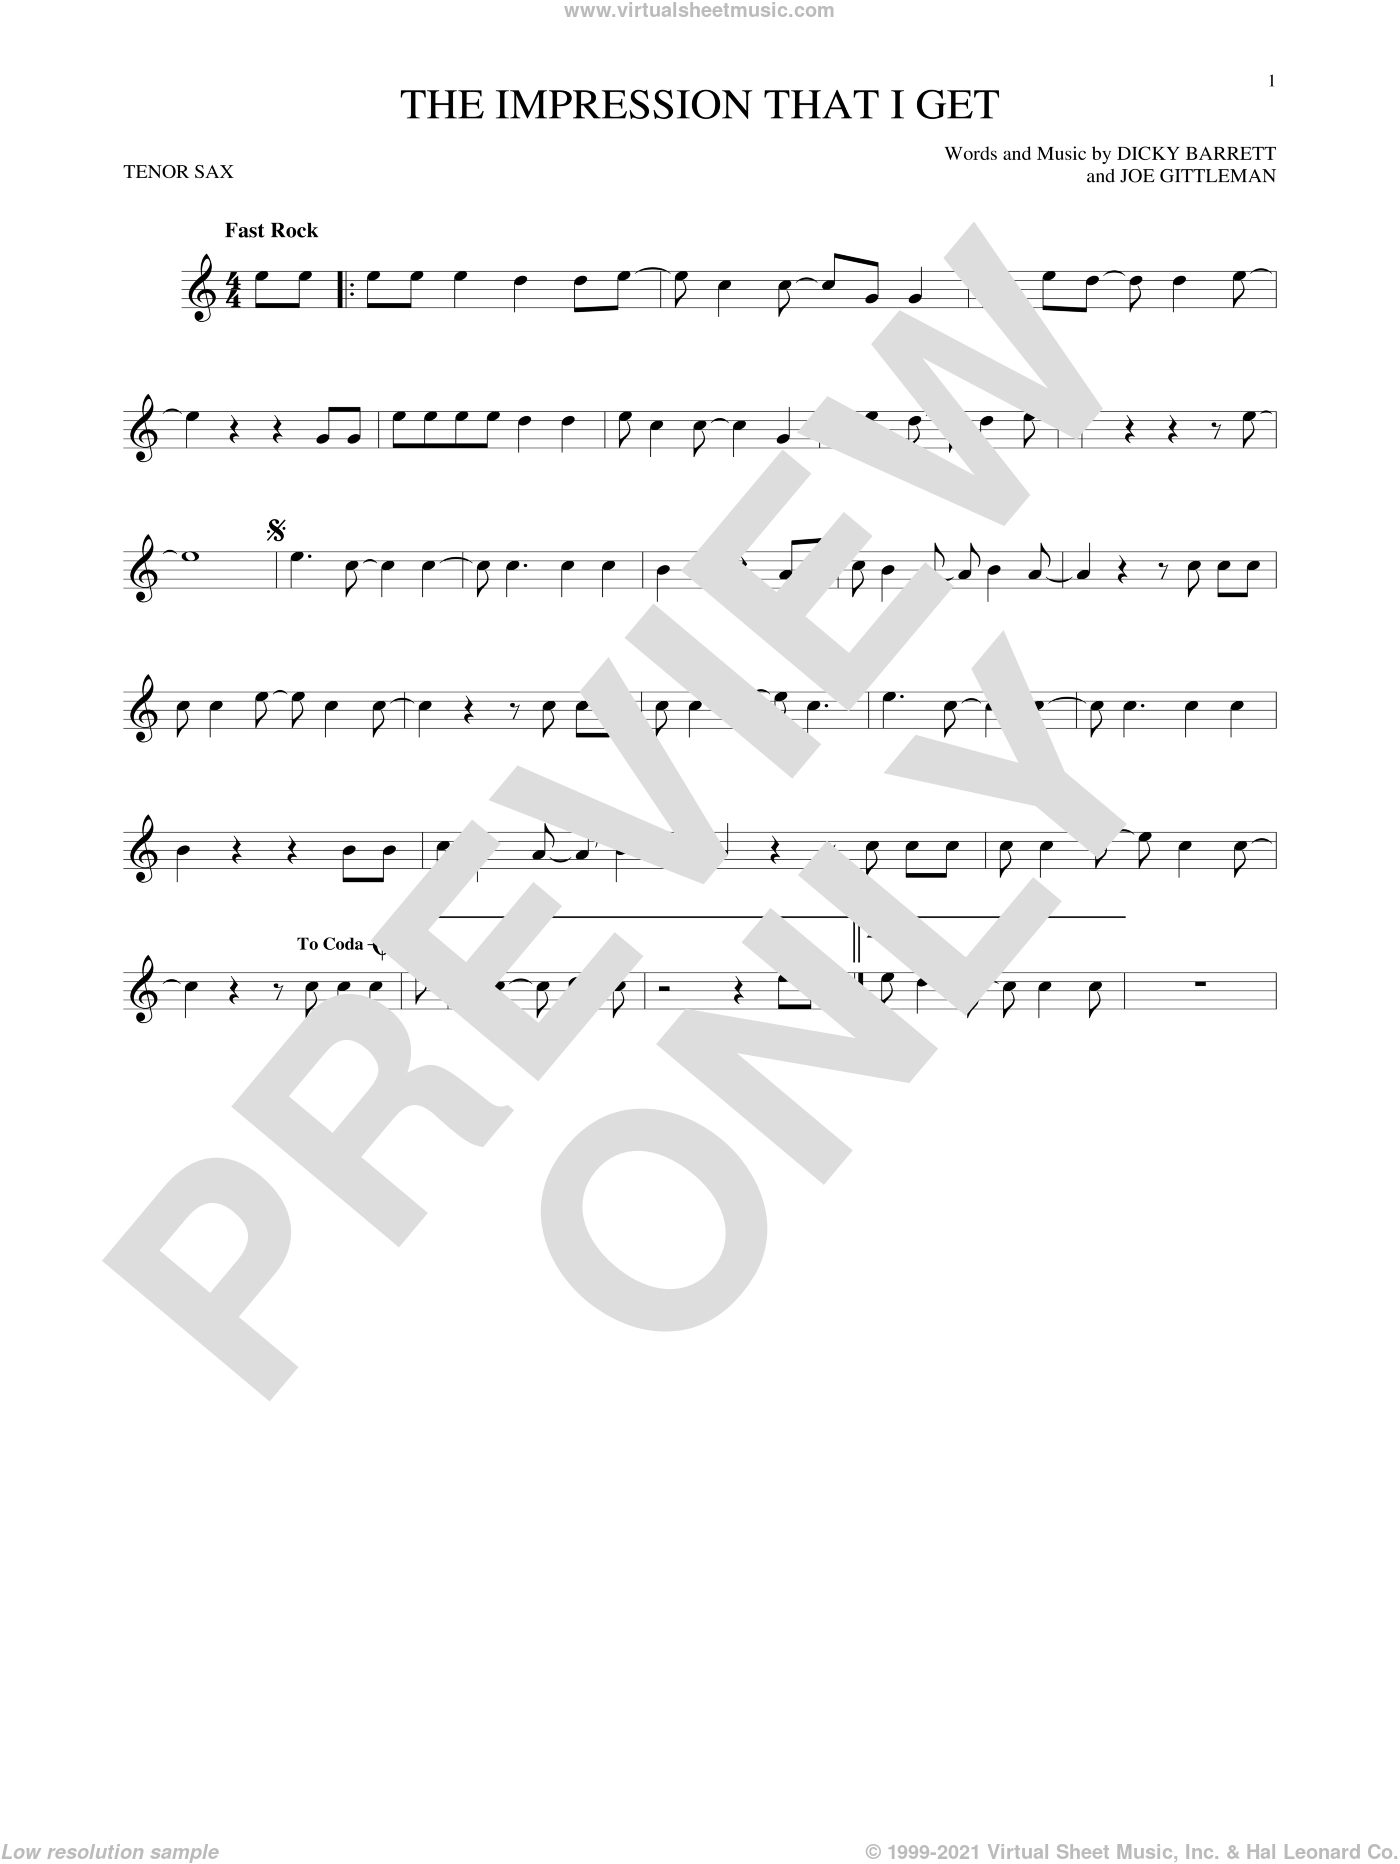 The Impression That I Get sheet music for tenor saxophone solo by The Mighty Mighty Bosstones, Dicky Barrett and Joe Gittleman, intermediate. Score Image Preview.